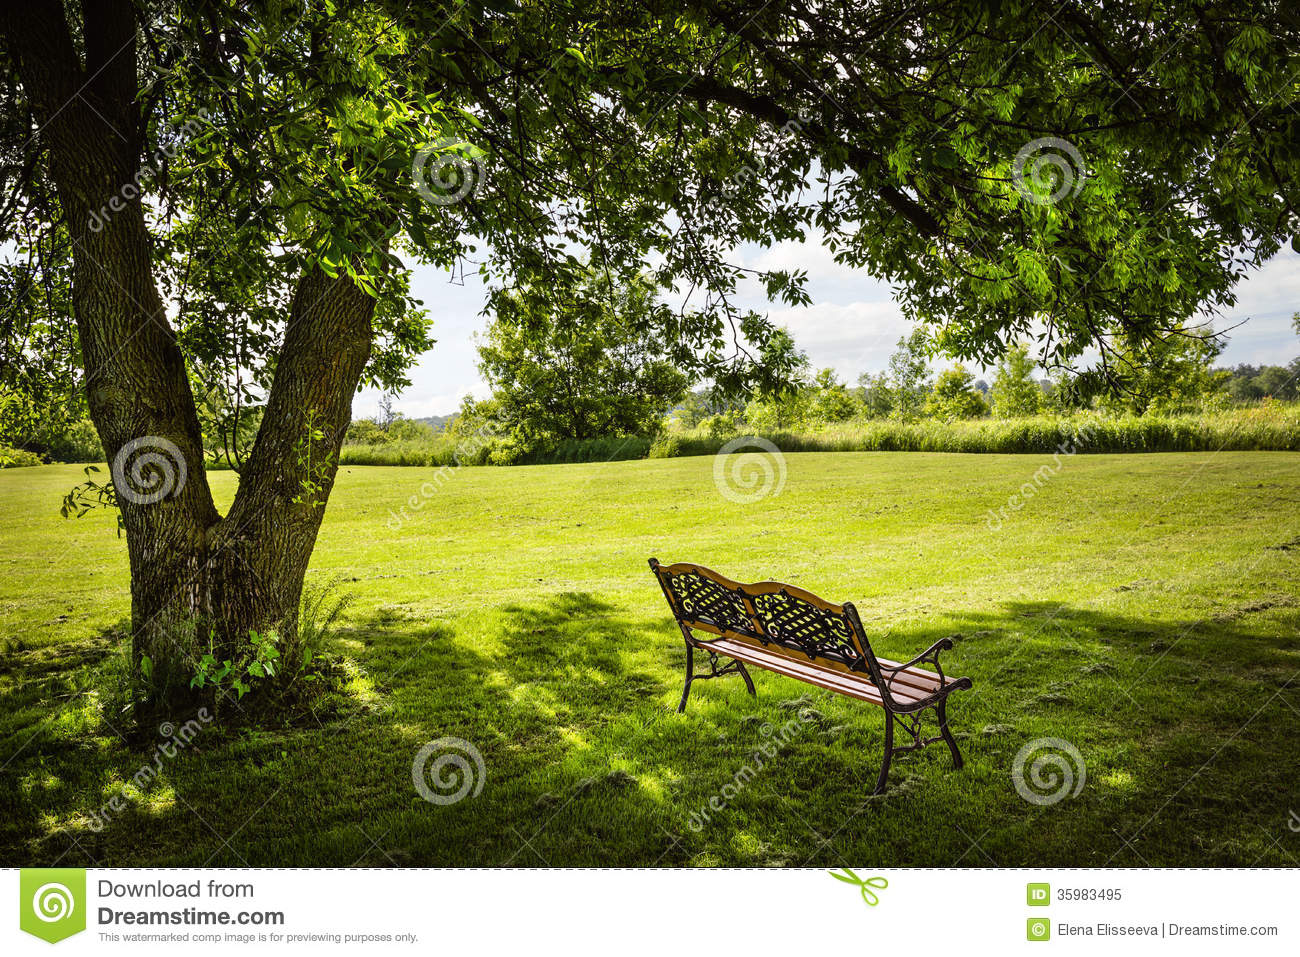 Park Bench Under Tree Royalty Free Stock Photo - Image: 35983495